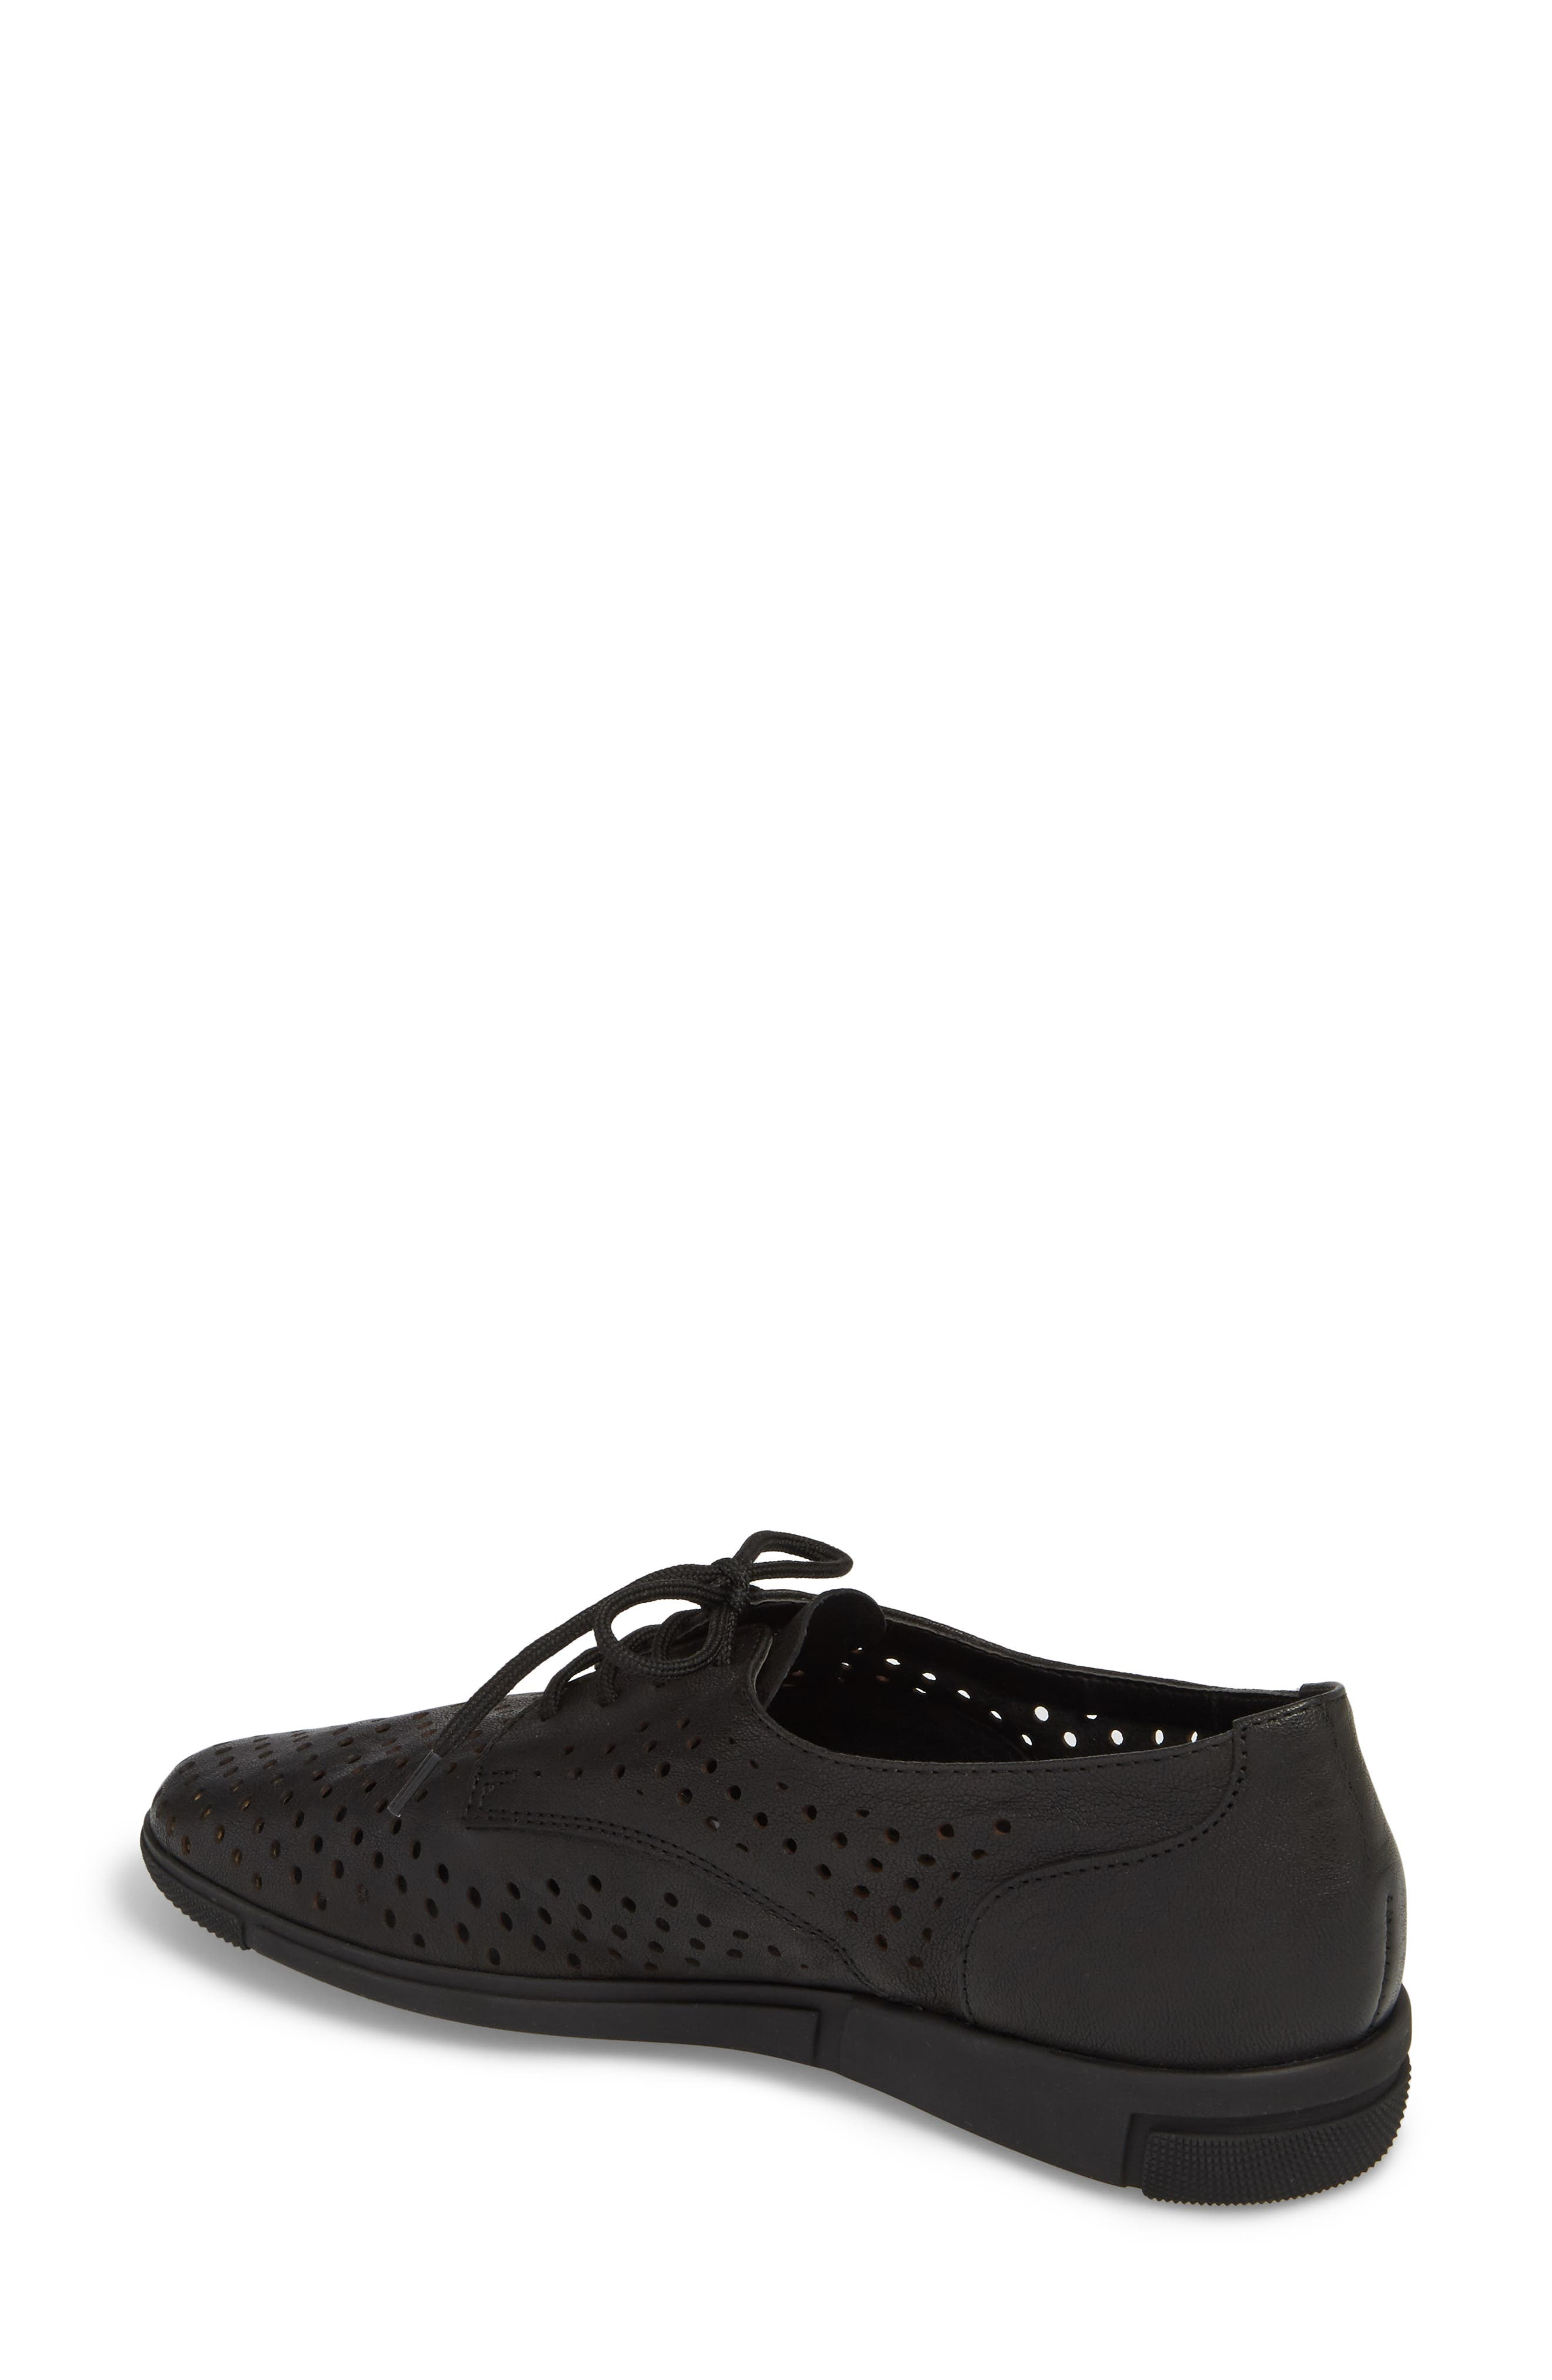 Dirce Perforated Oxford Flat,                             Alternate thumbnail 2, color,                             001